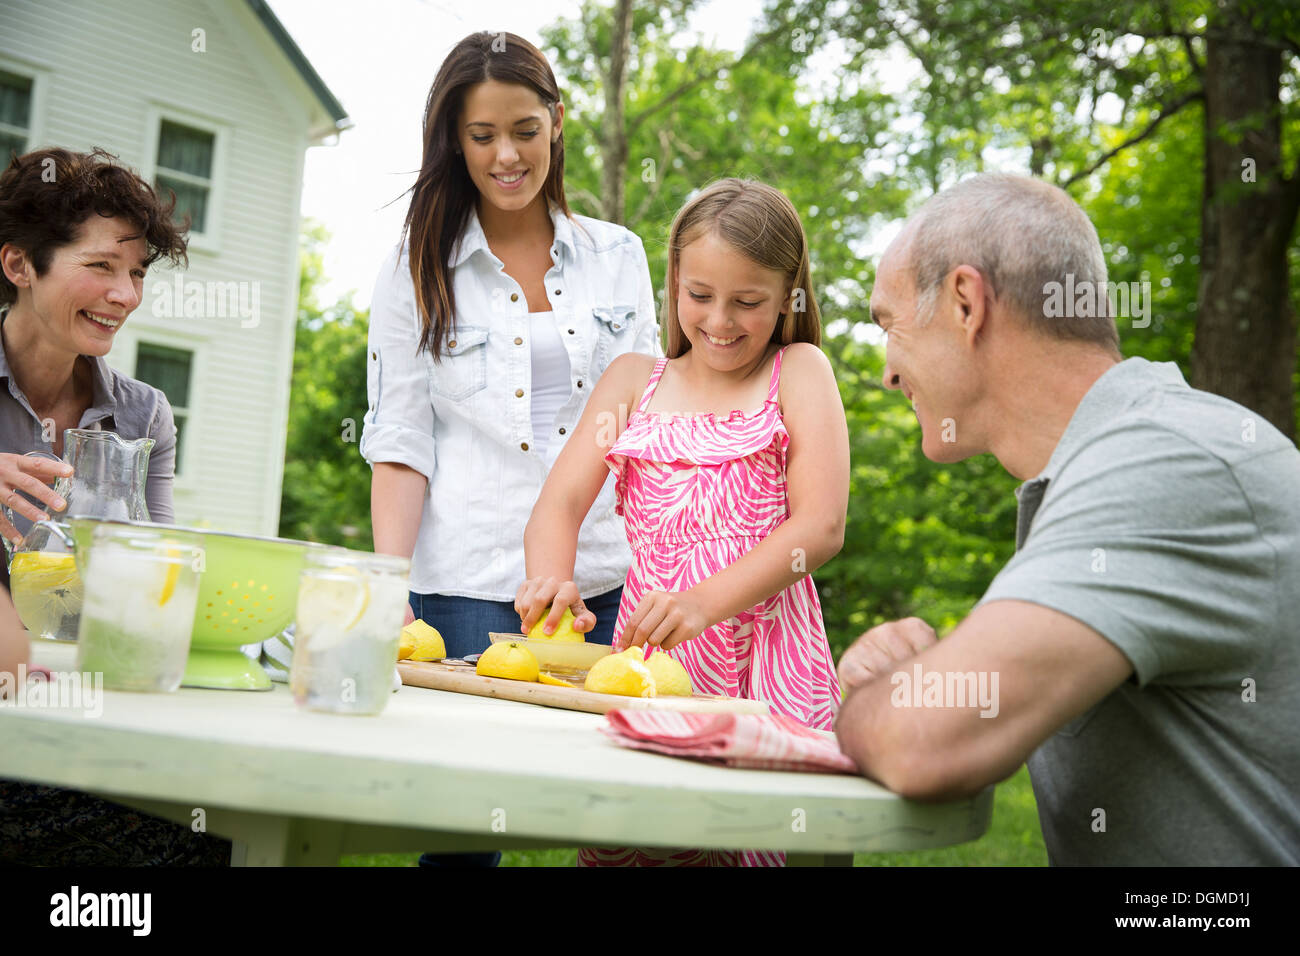 A summer family gathering at a farm. A girl slicing and juicing lemons to make lemonade. - Stock Image